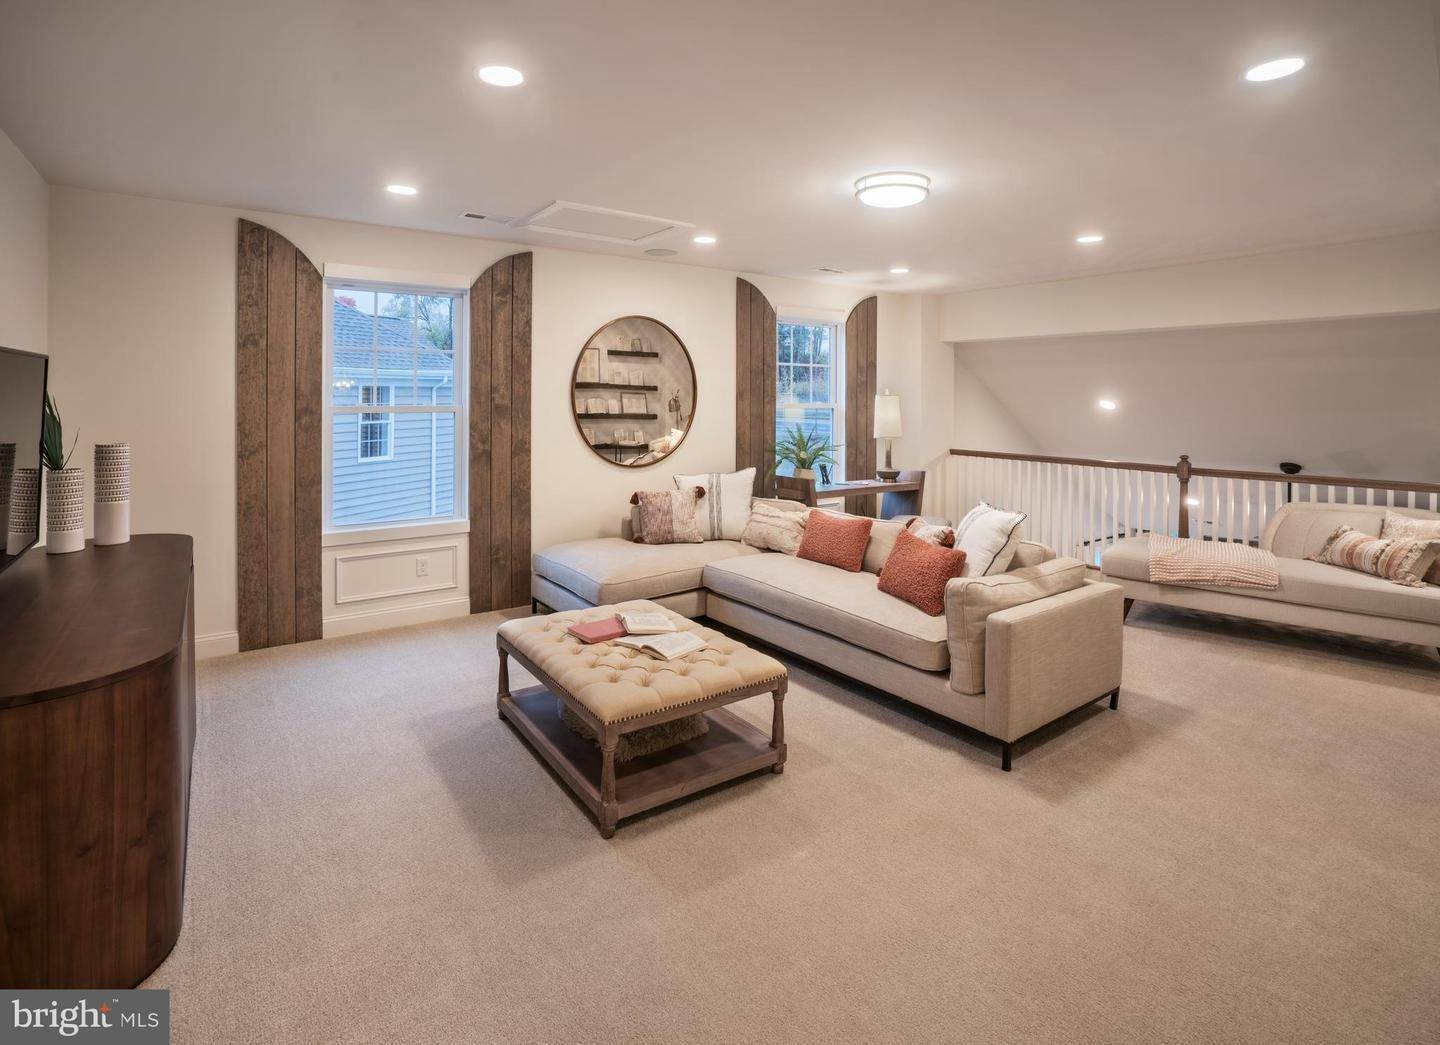 8. Residential for Sale at 818 FOUNDERS WAY #BETSY ROSS MODEL East Petersburg, Pennsylvania 17520 United States